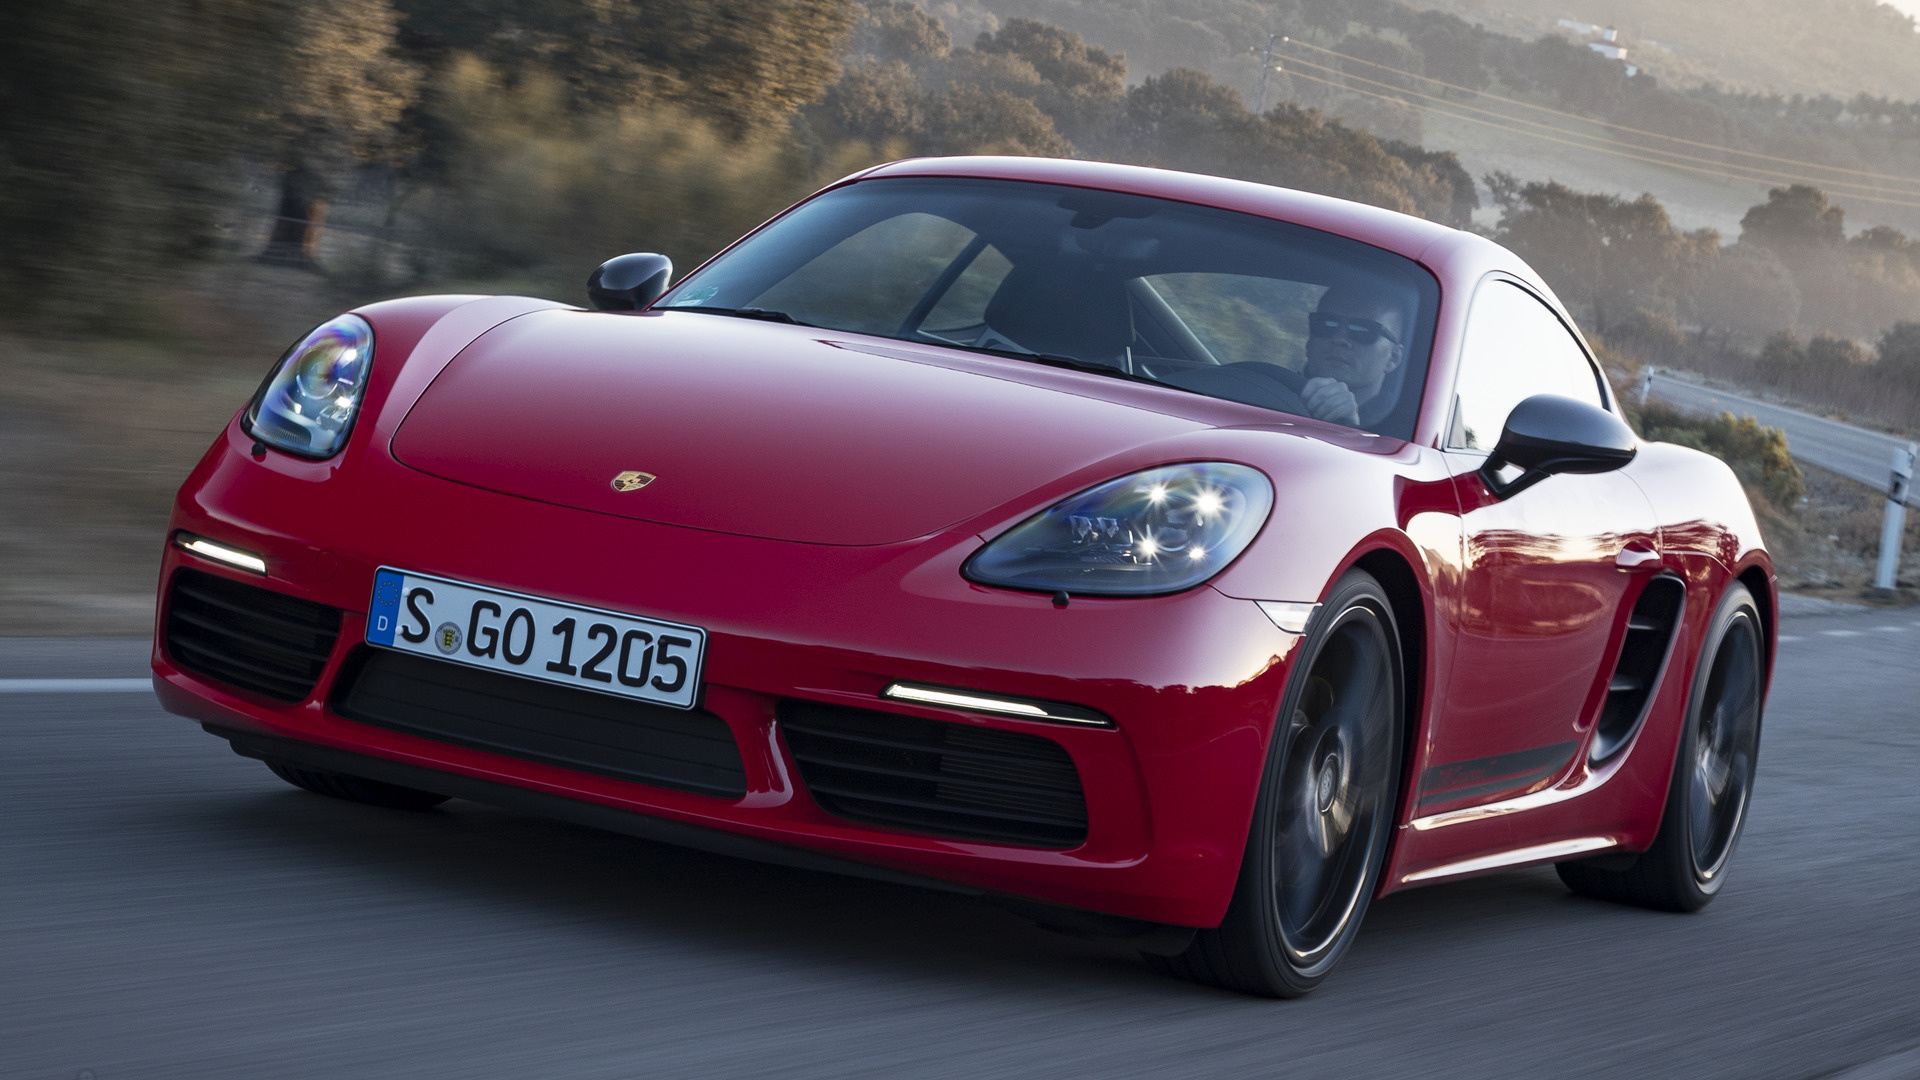 2019 Porsche 718 Cayman T Wallpapers And Hd Images Car